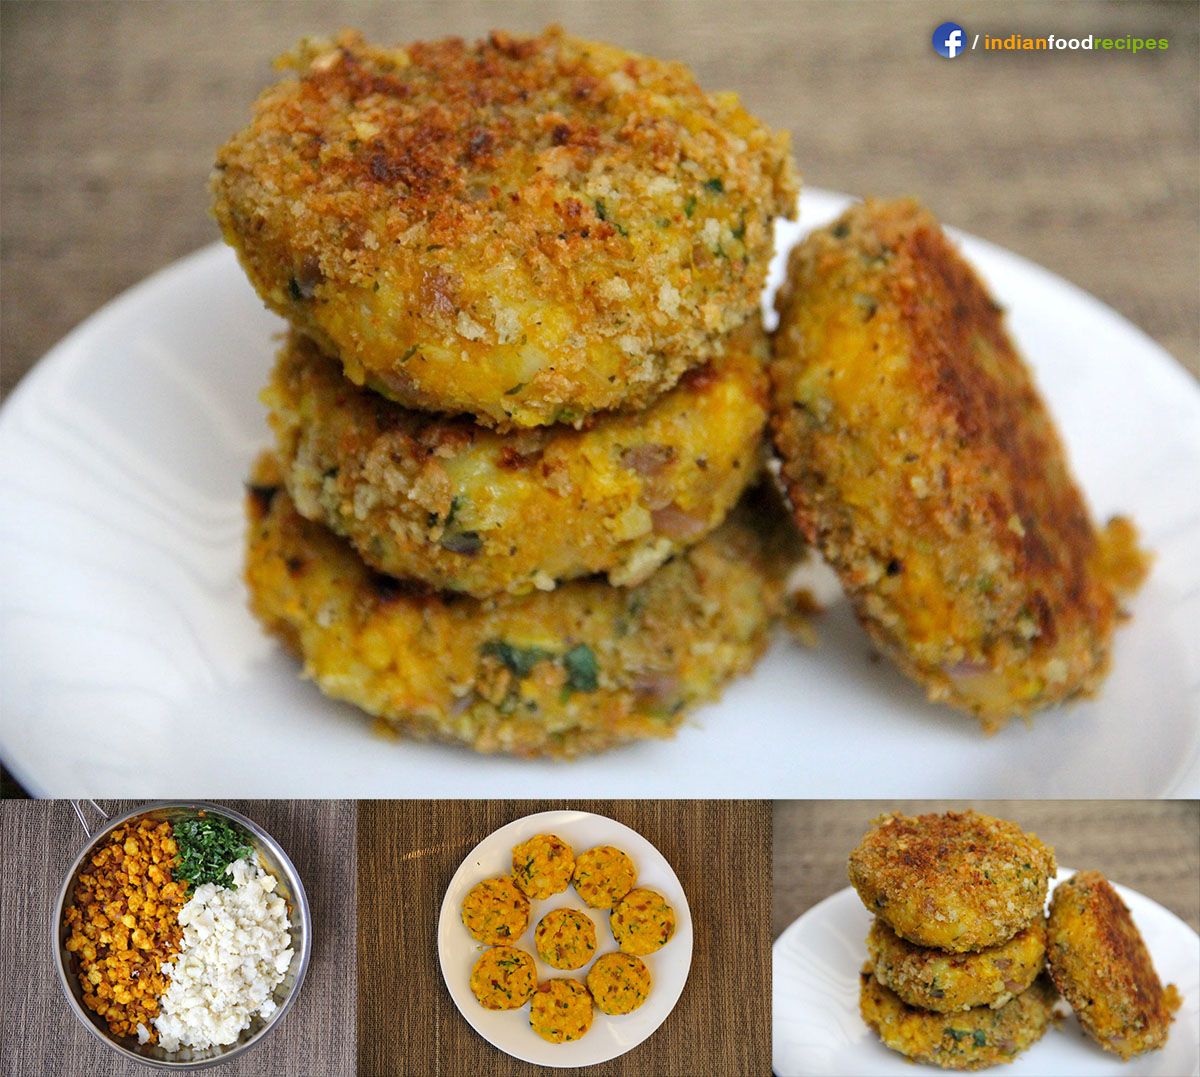 Shrimp Patties in 30 minutes recipe step by step